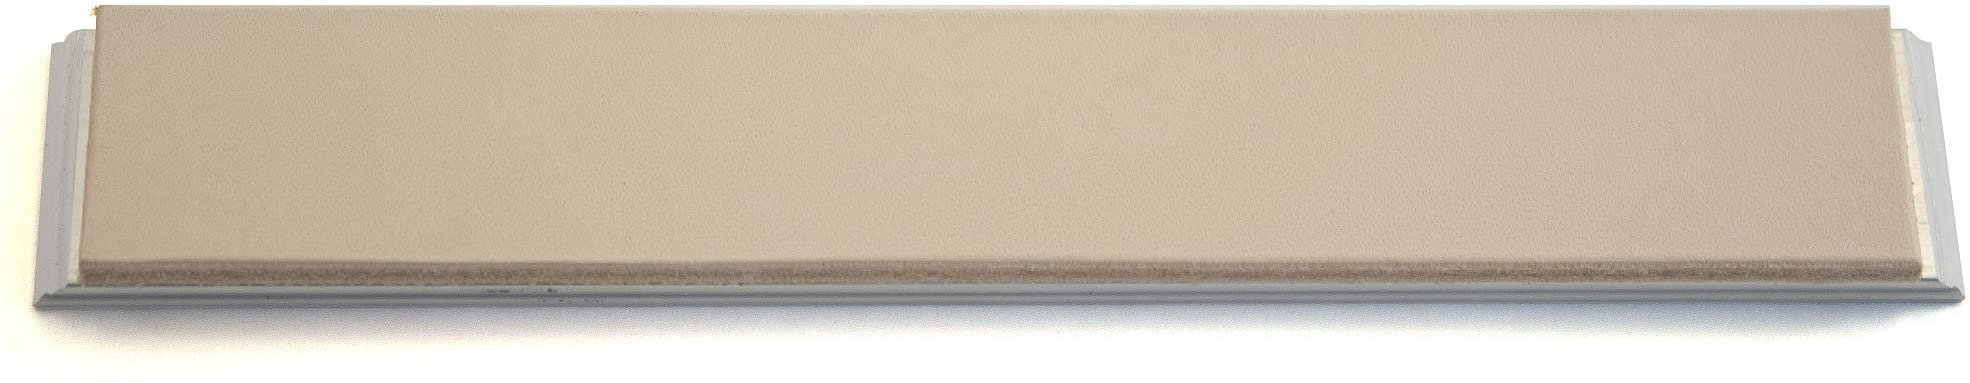 Cowhide Leather Strop 6 x 1 with Aluminum Mounting for Edge Pro